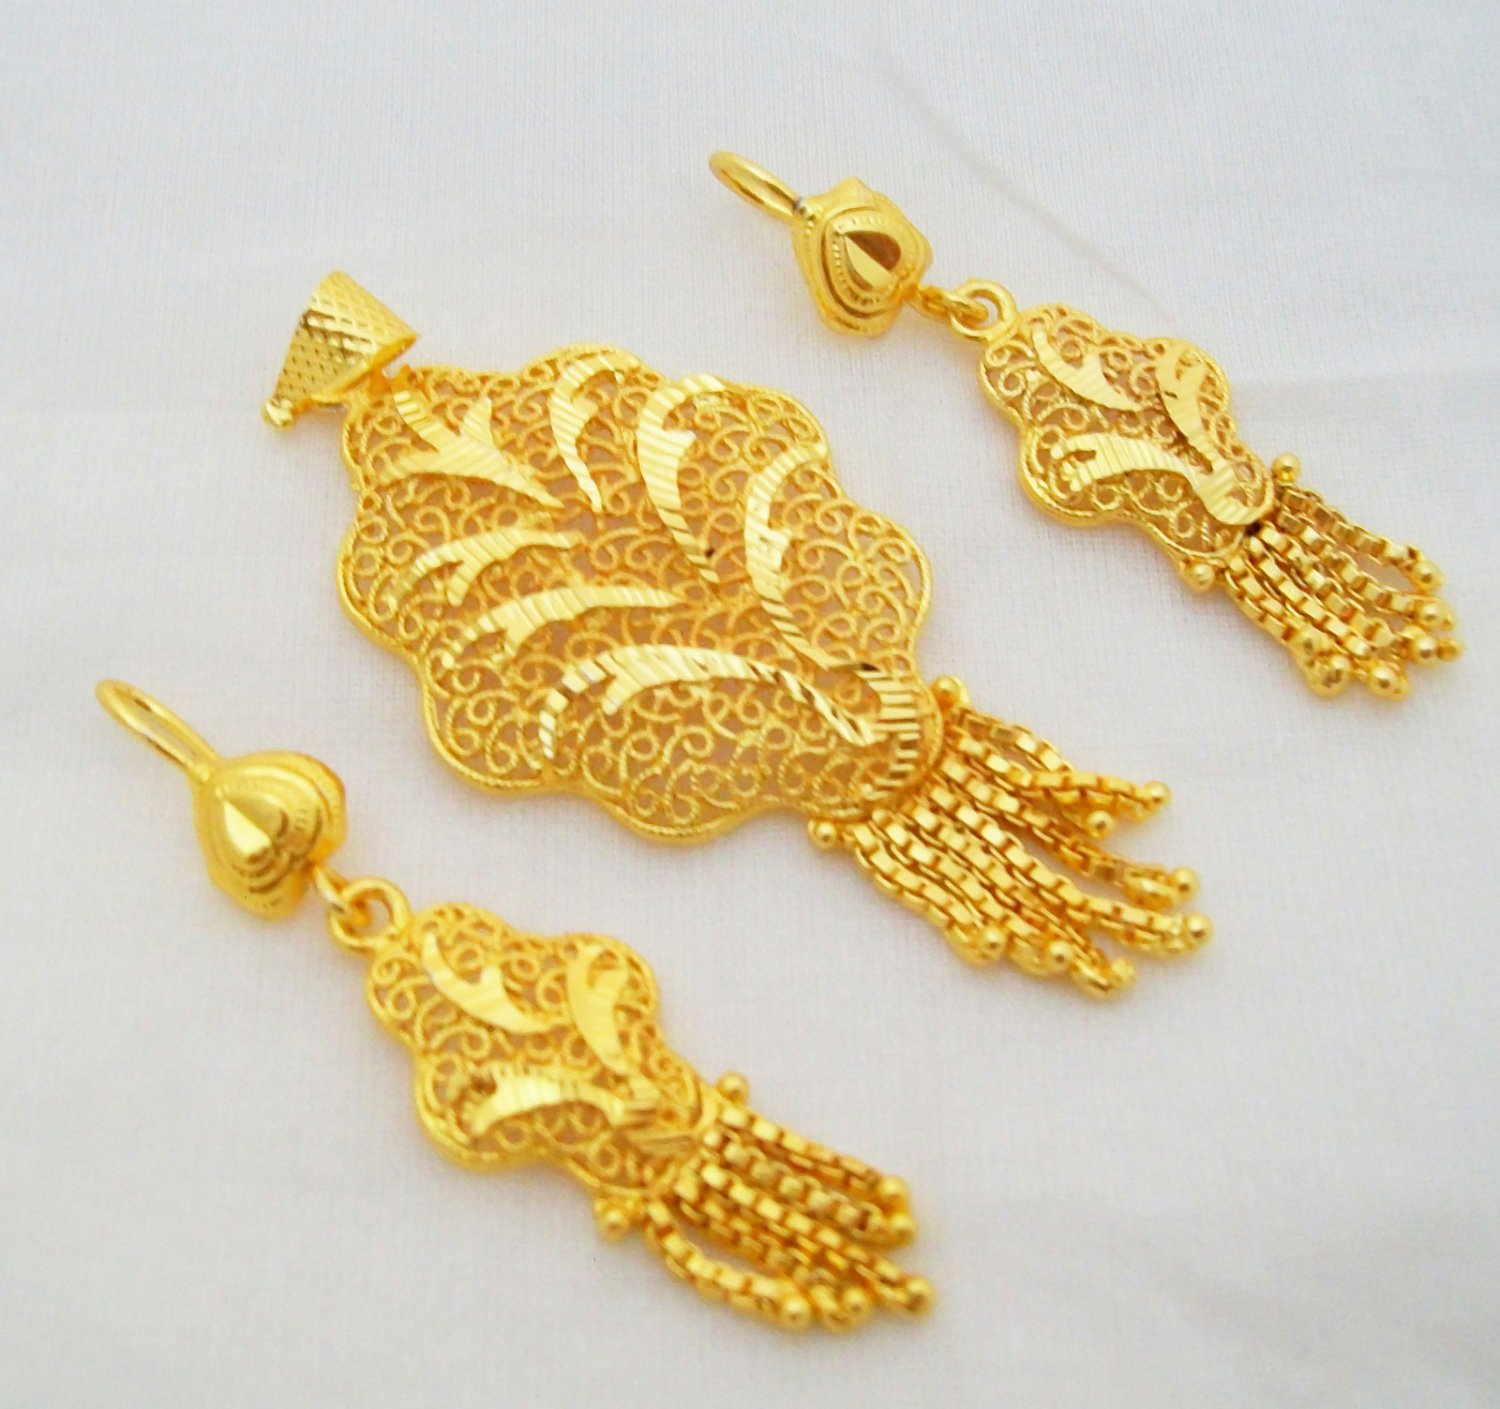 Handmade Filigree Gold Plated Pendant Earring Set